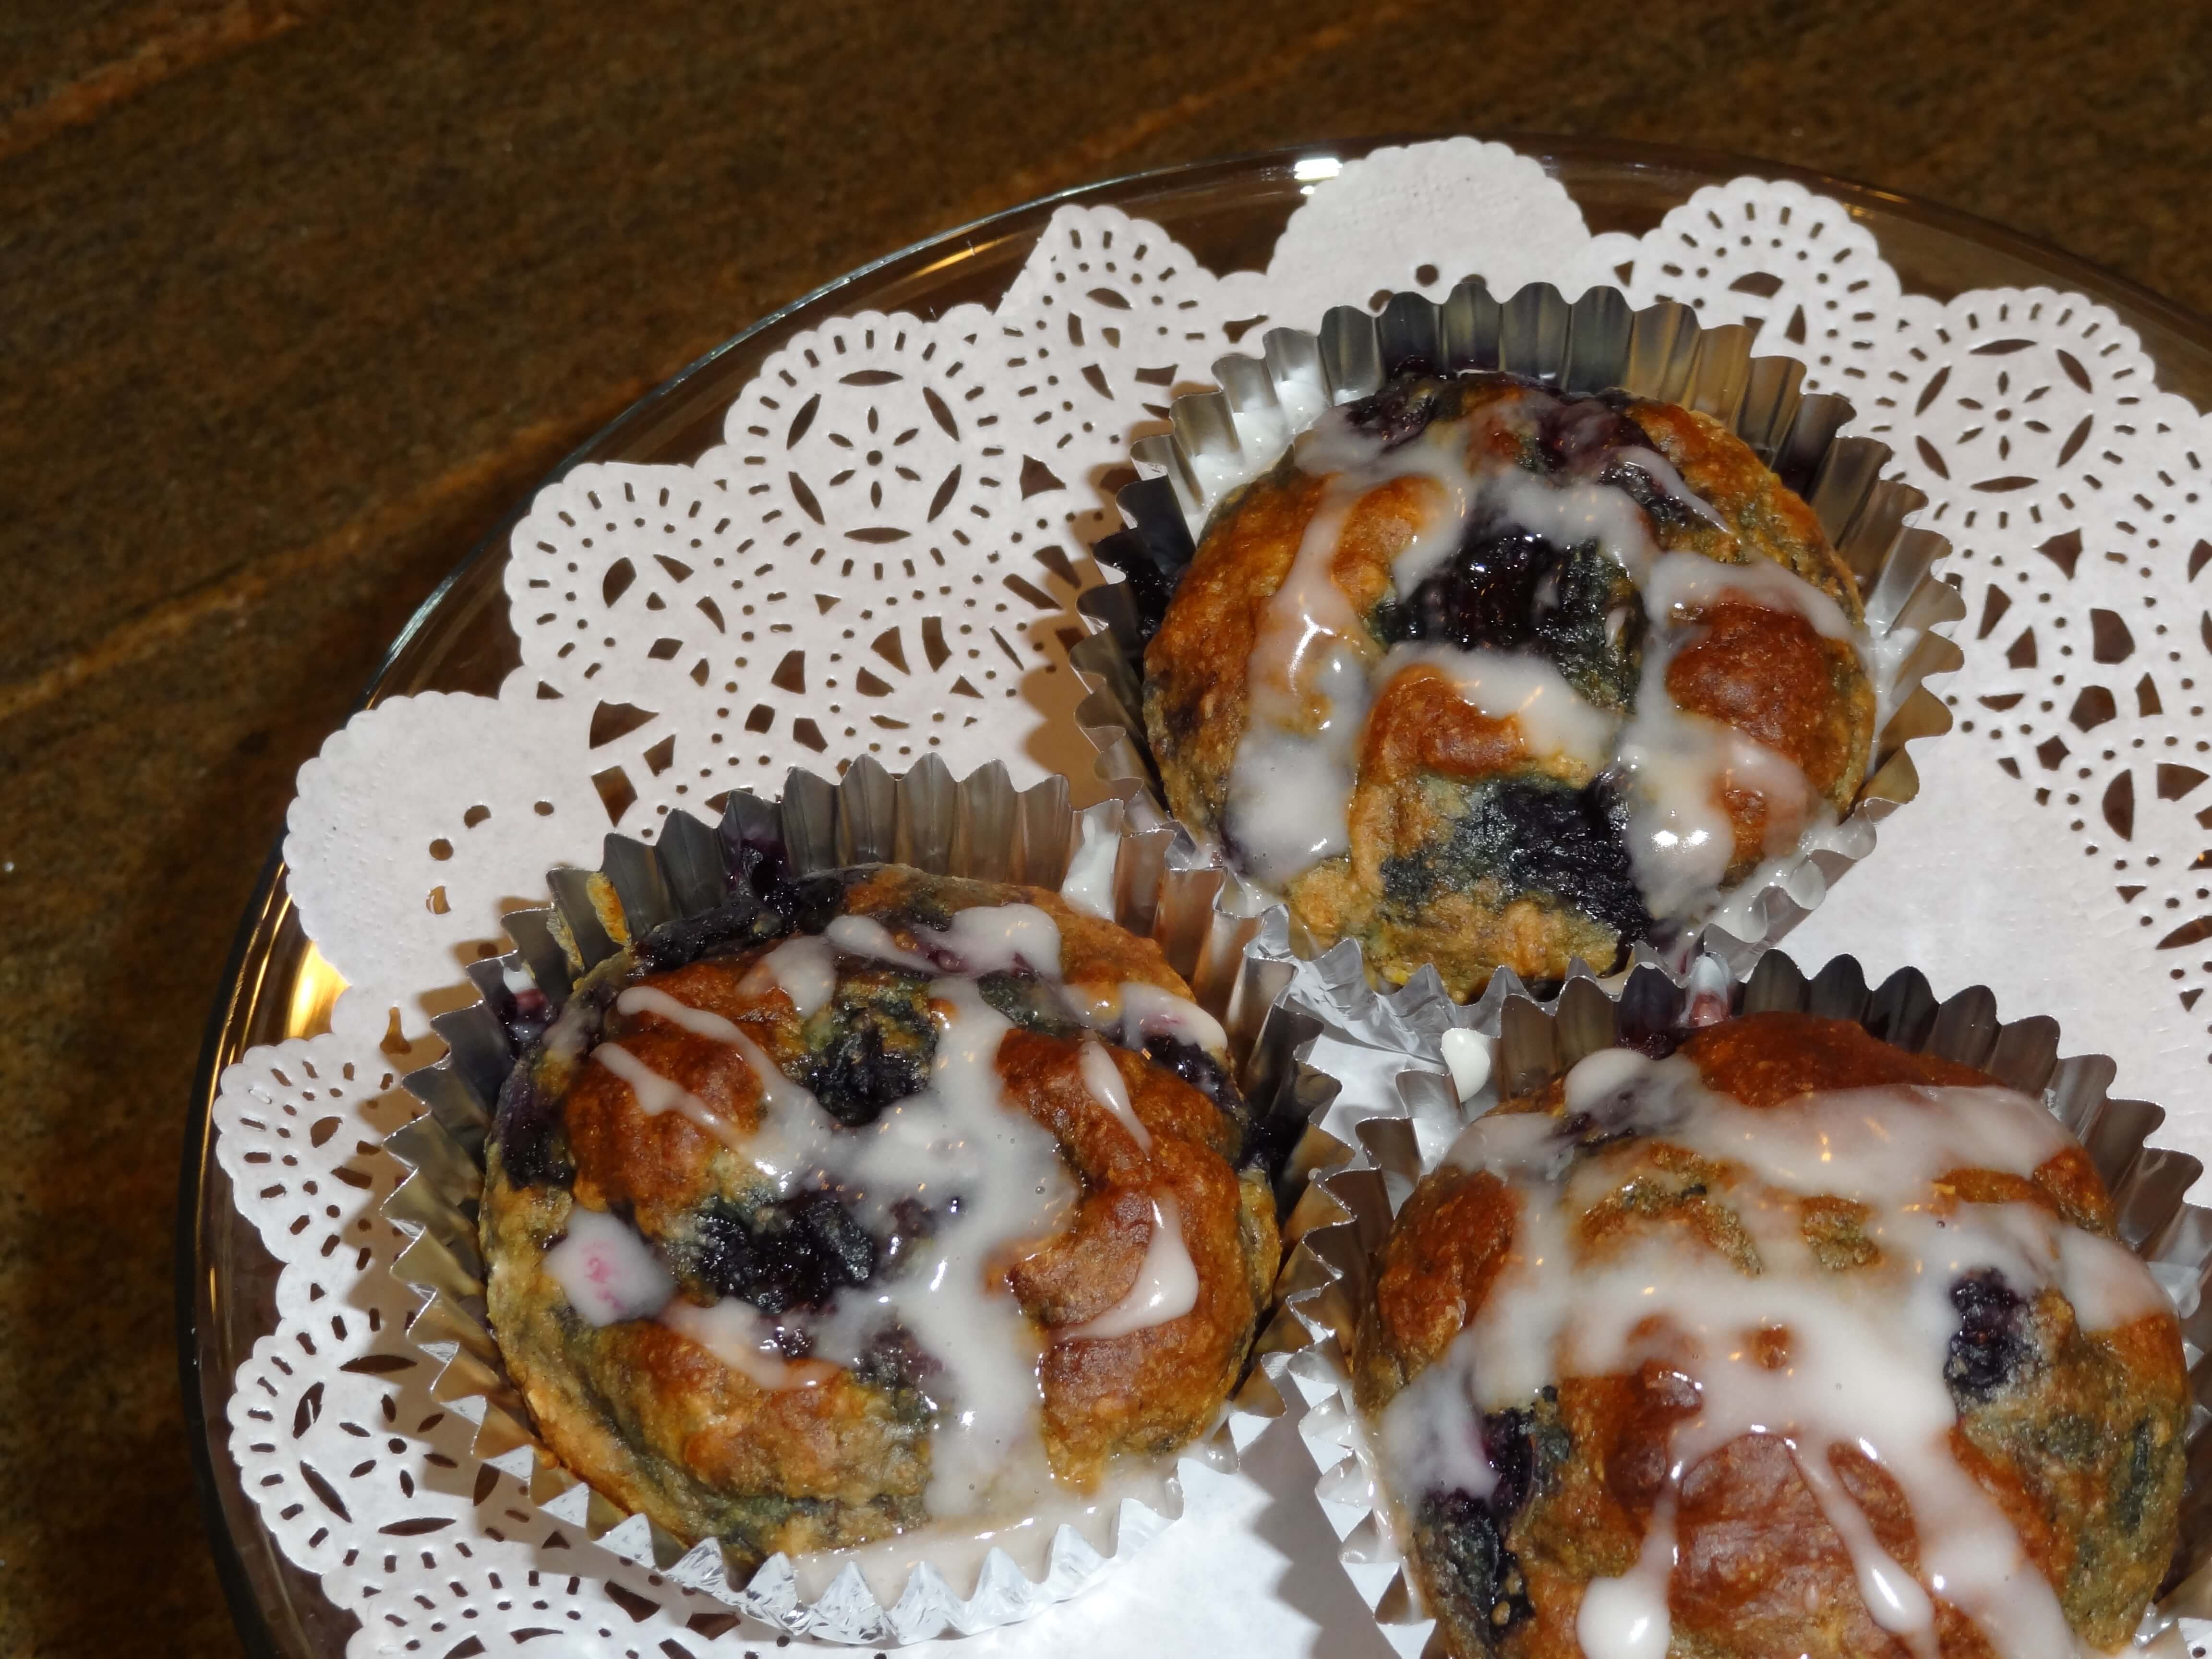 Side view of a muffin on a plate